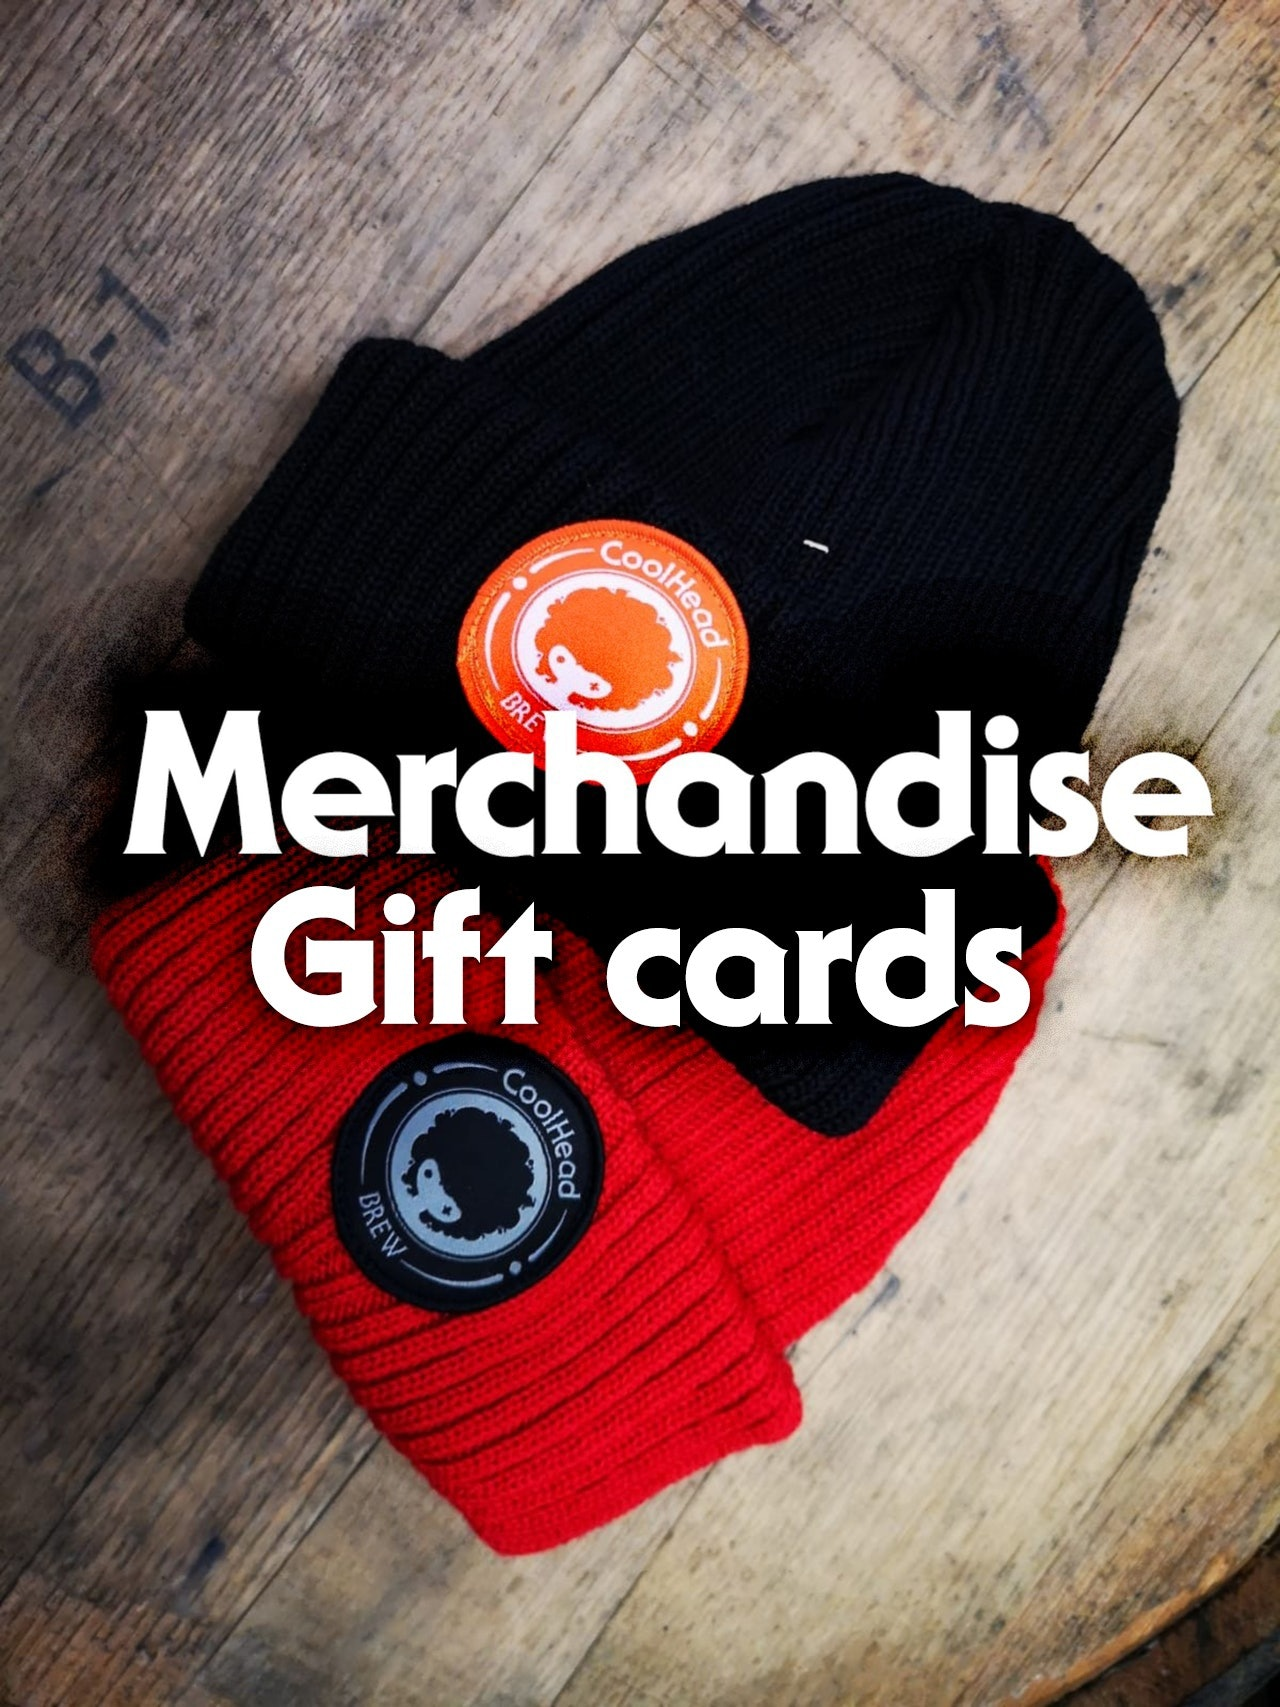 Merchandise & Gift Cards